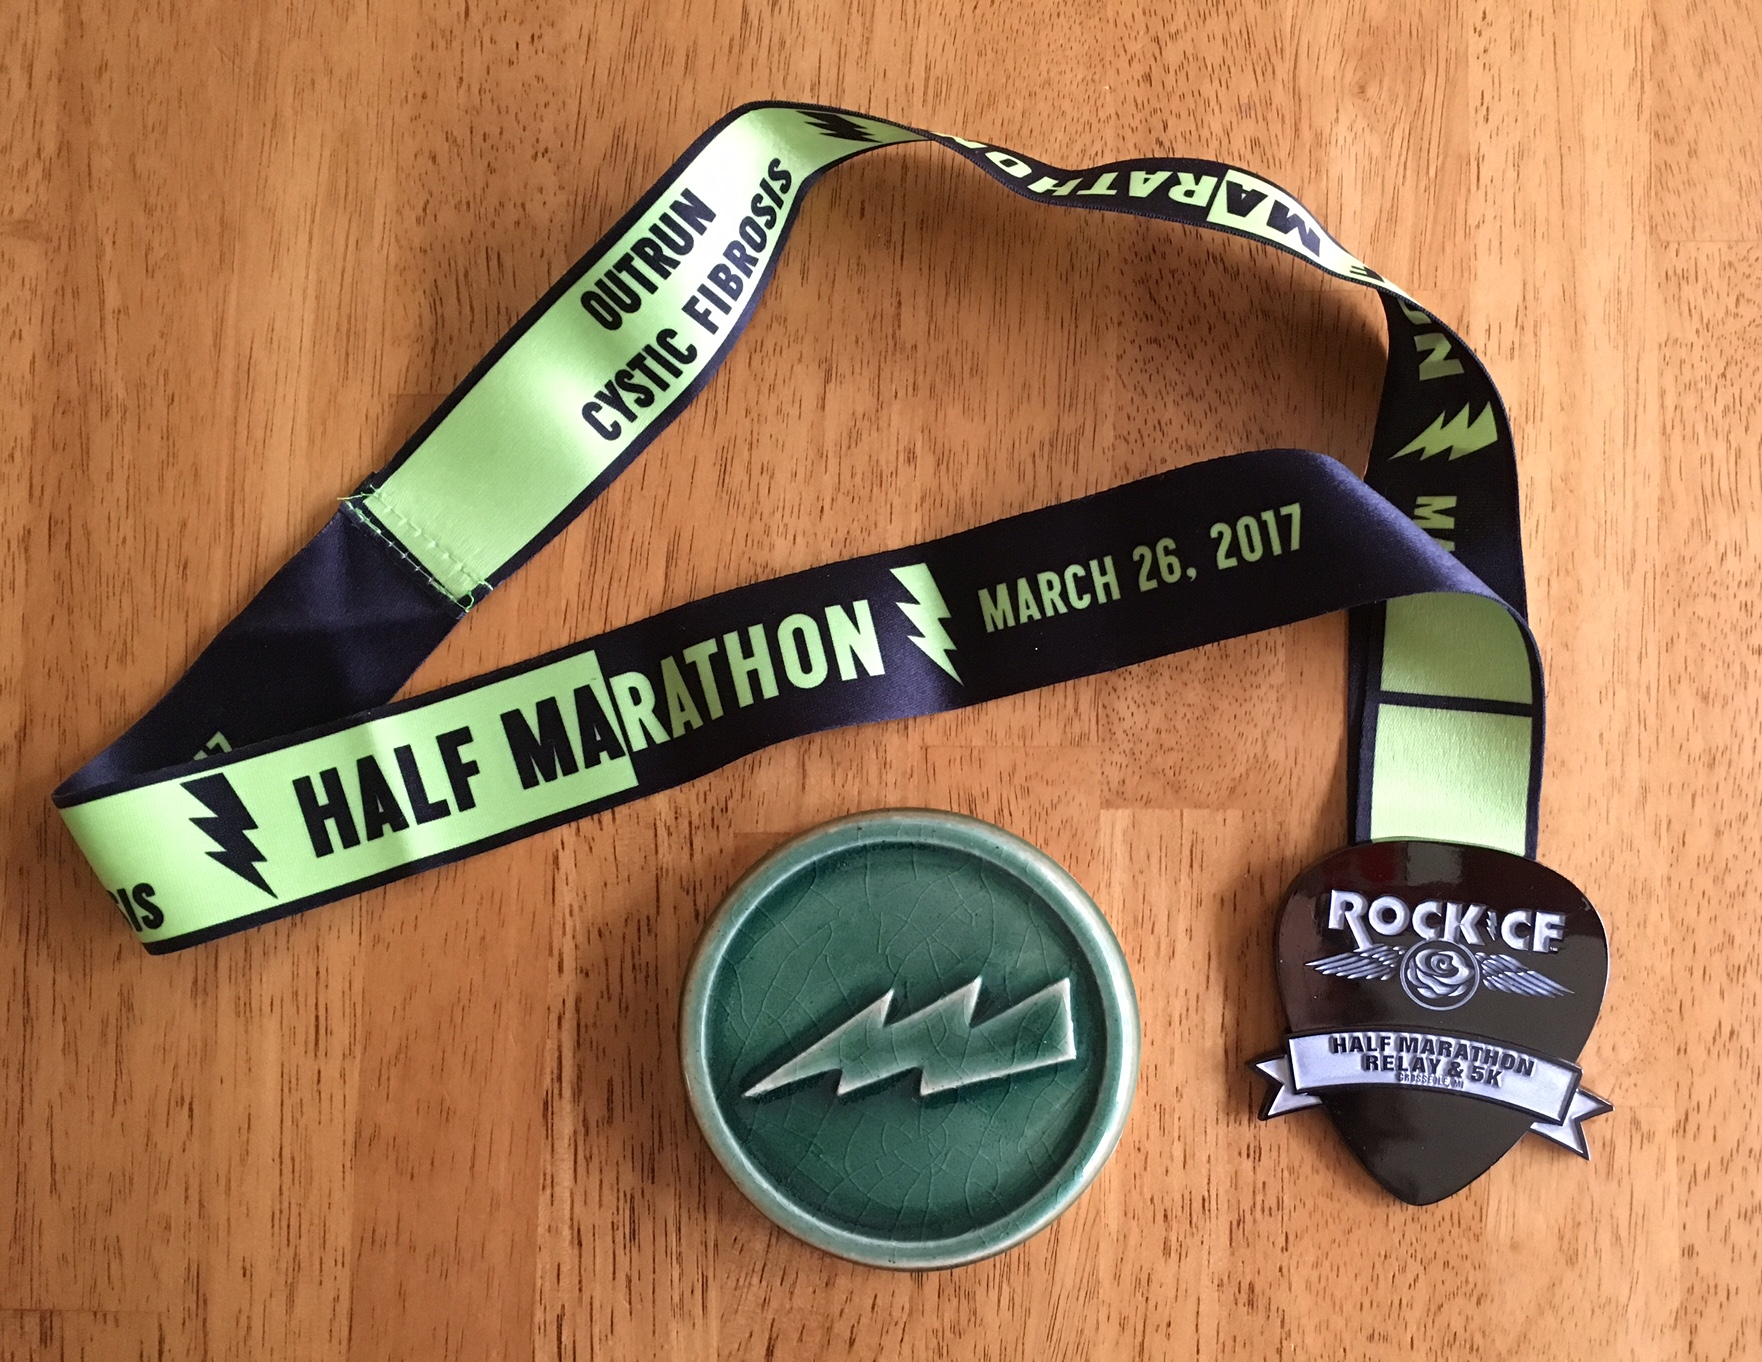 Finisher's medal and AG award